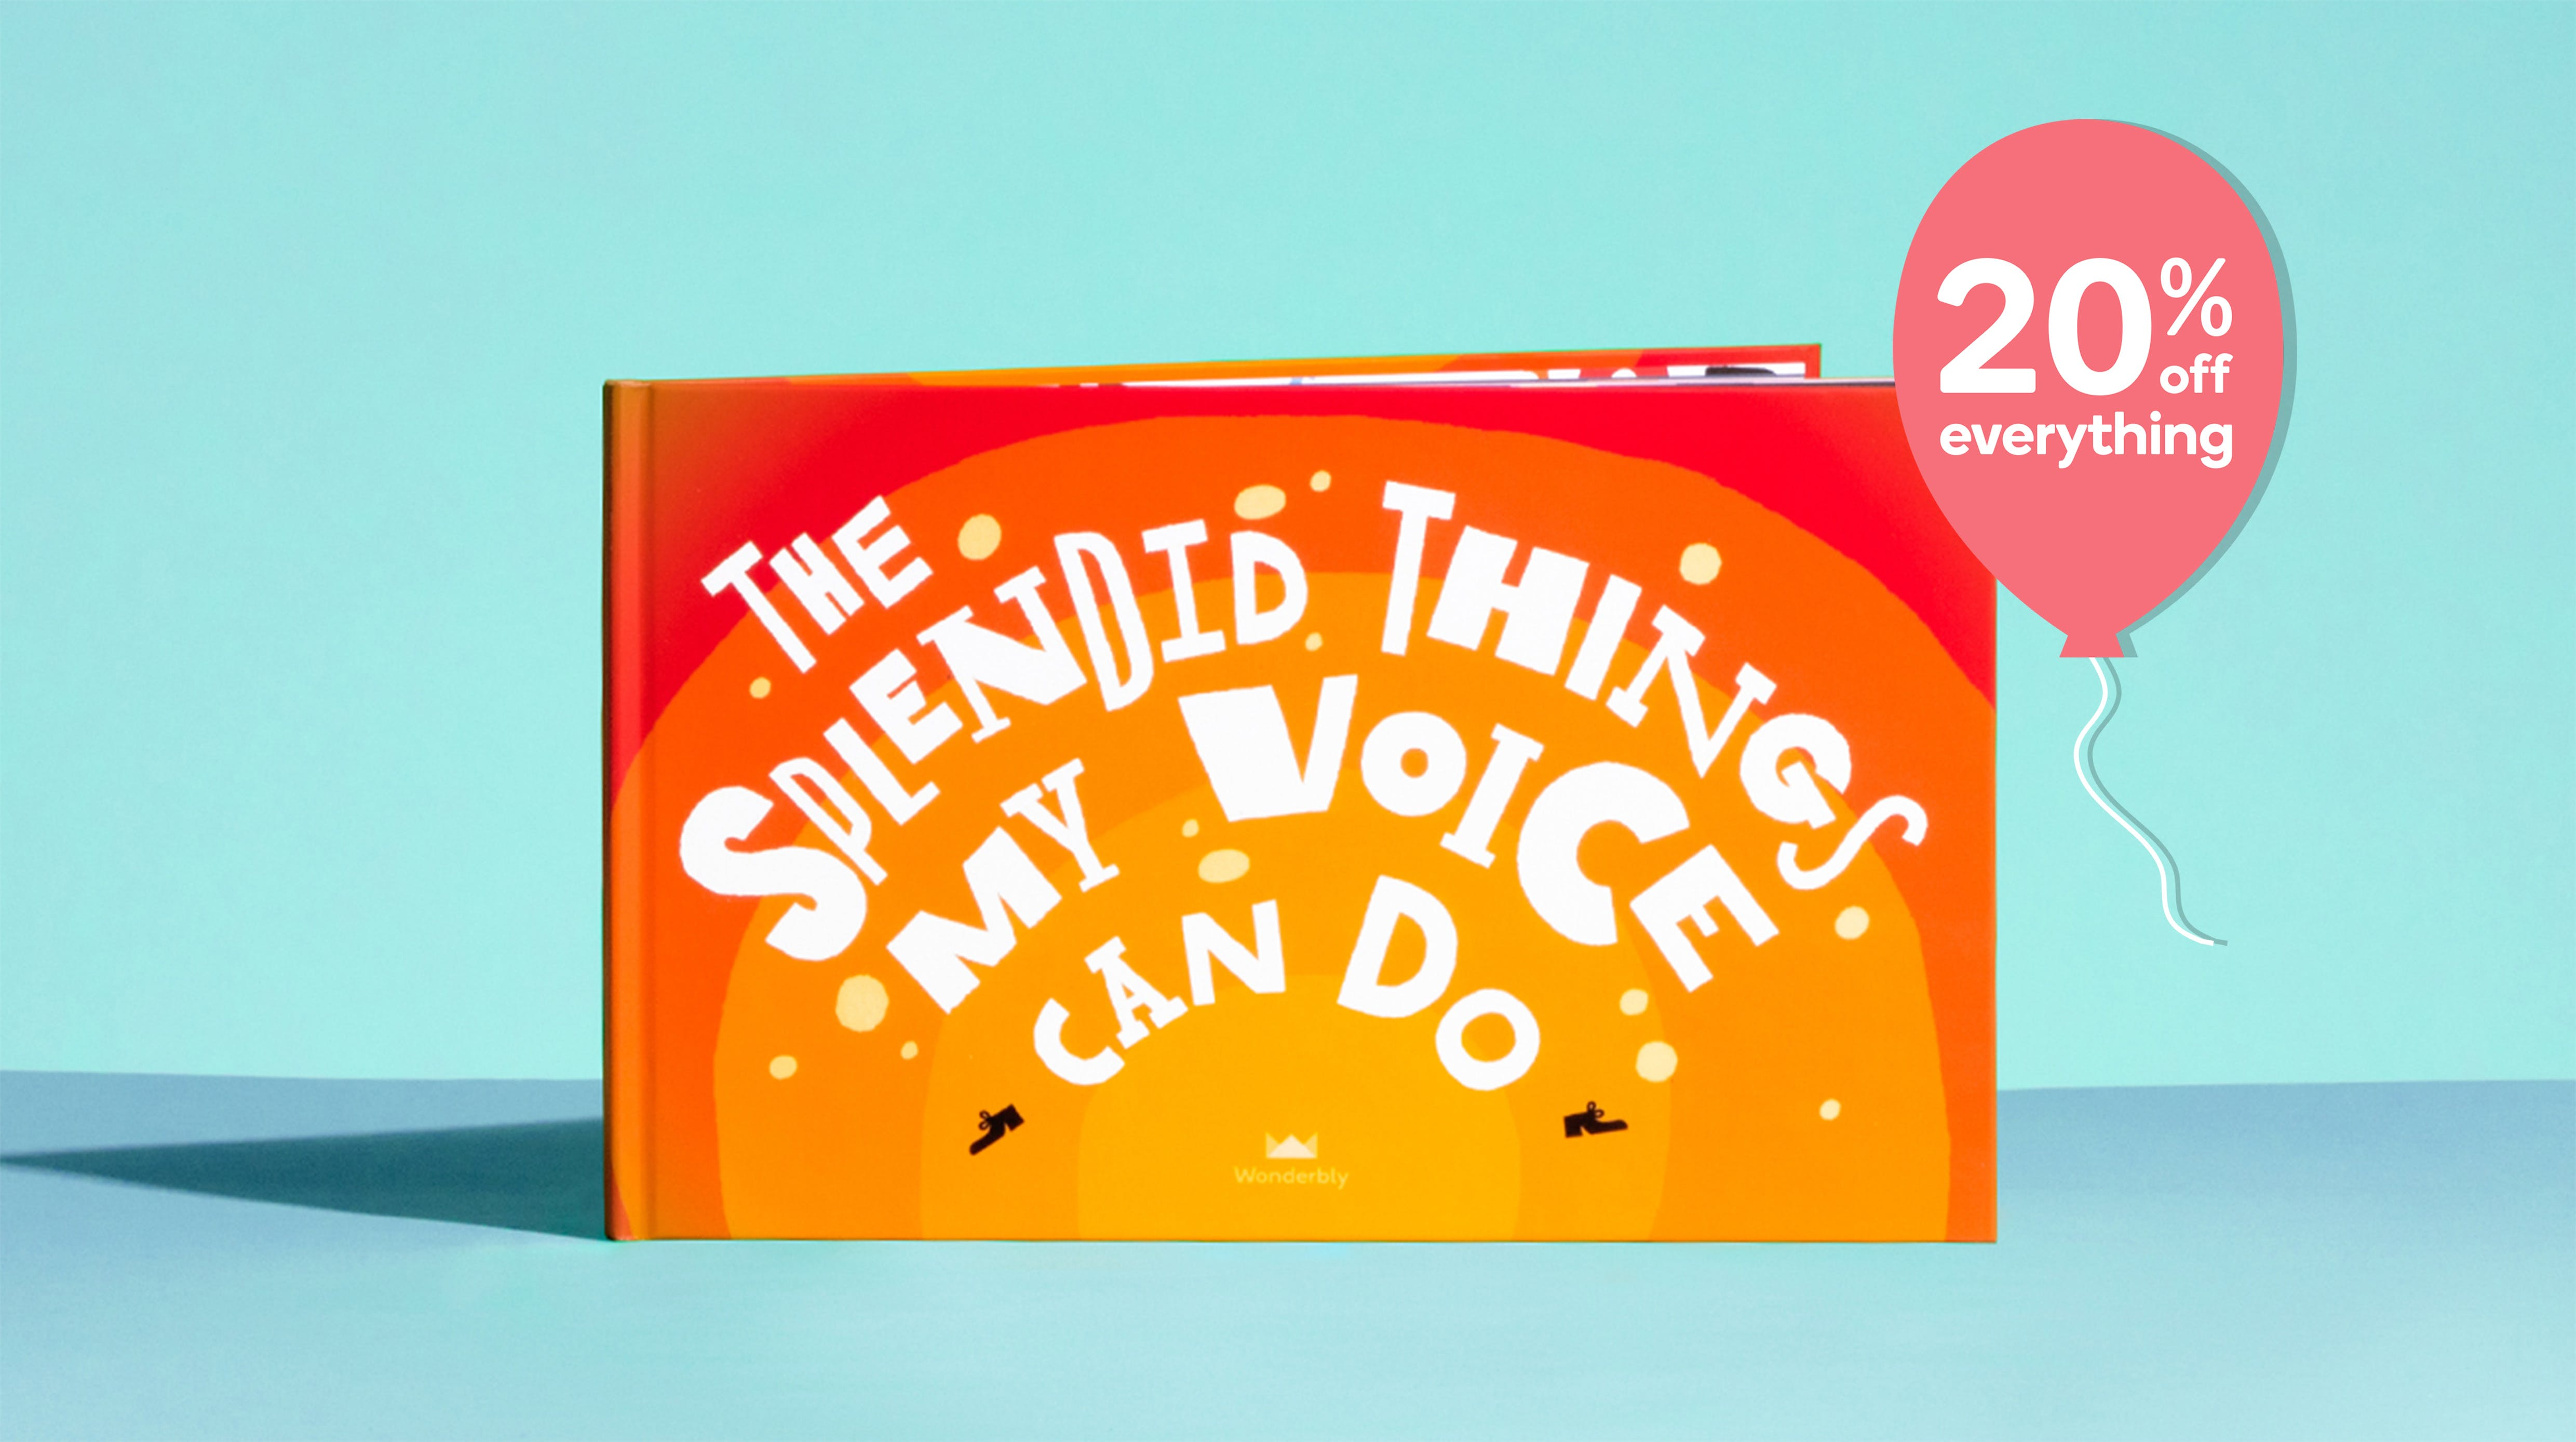 The Splendid Things My Voice Can Do